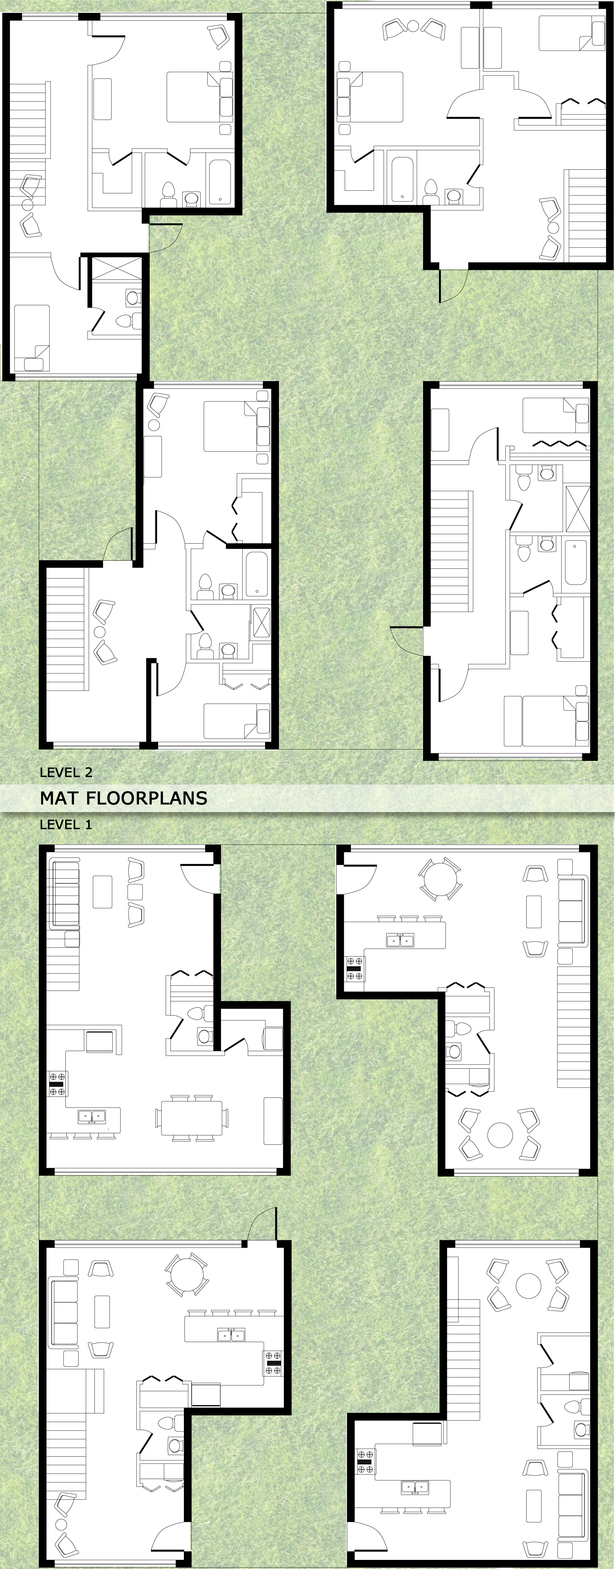 Unit Floorplan_Mat Variation